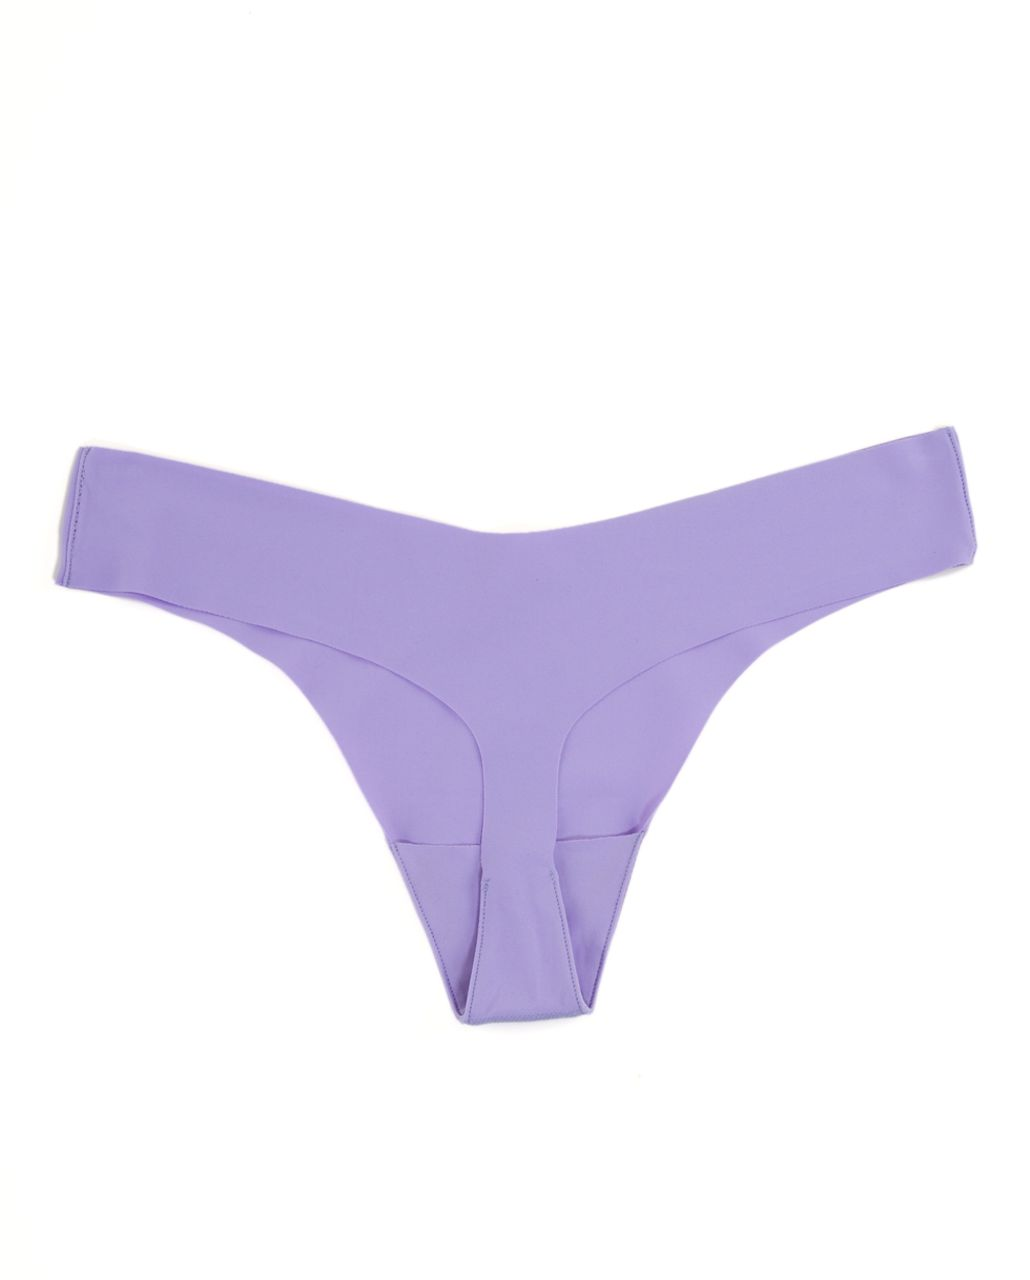 Lululemon Groovy Thong - Lilac